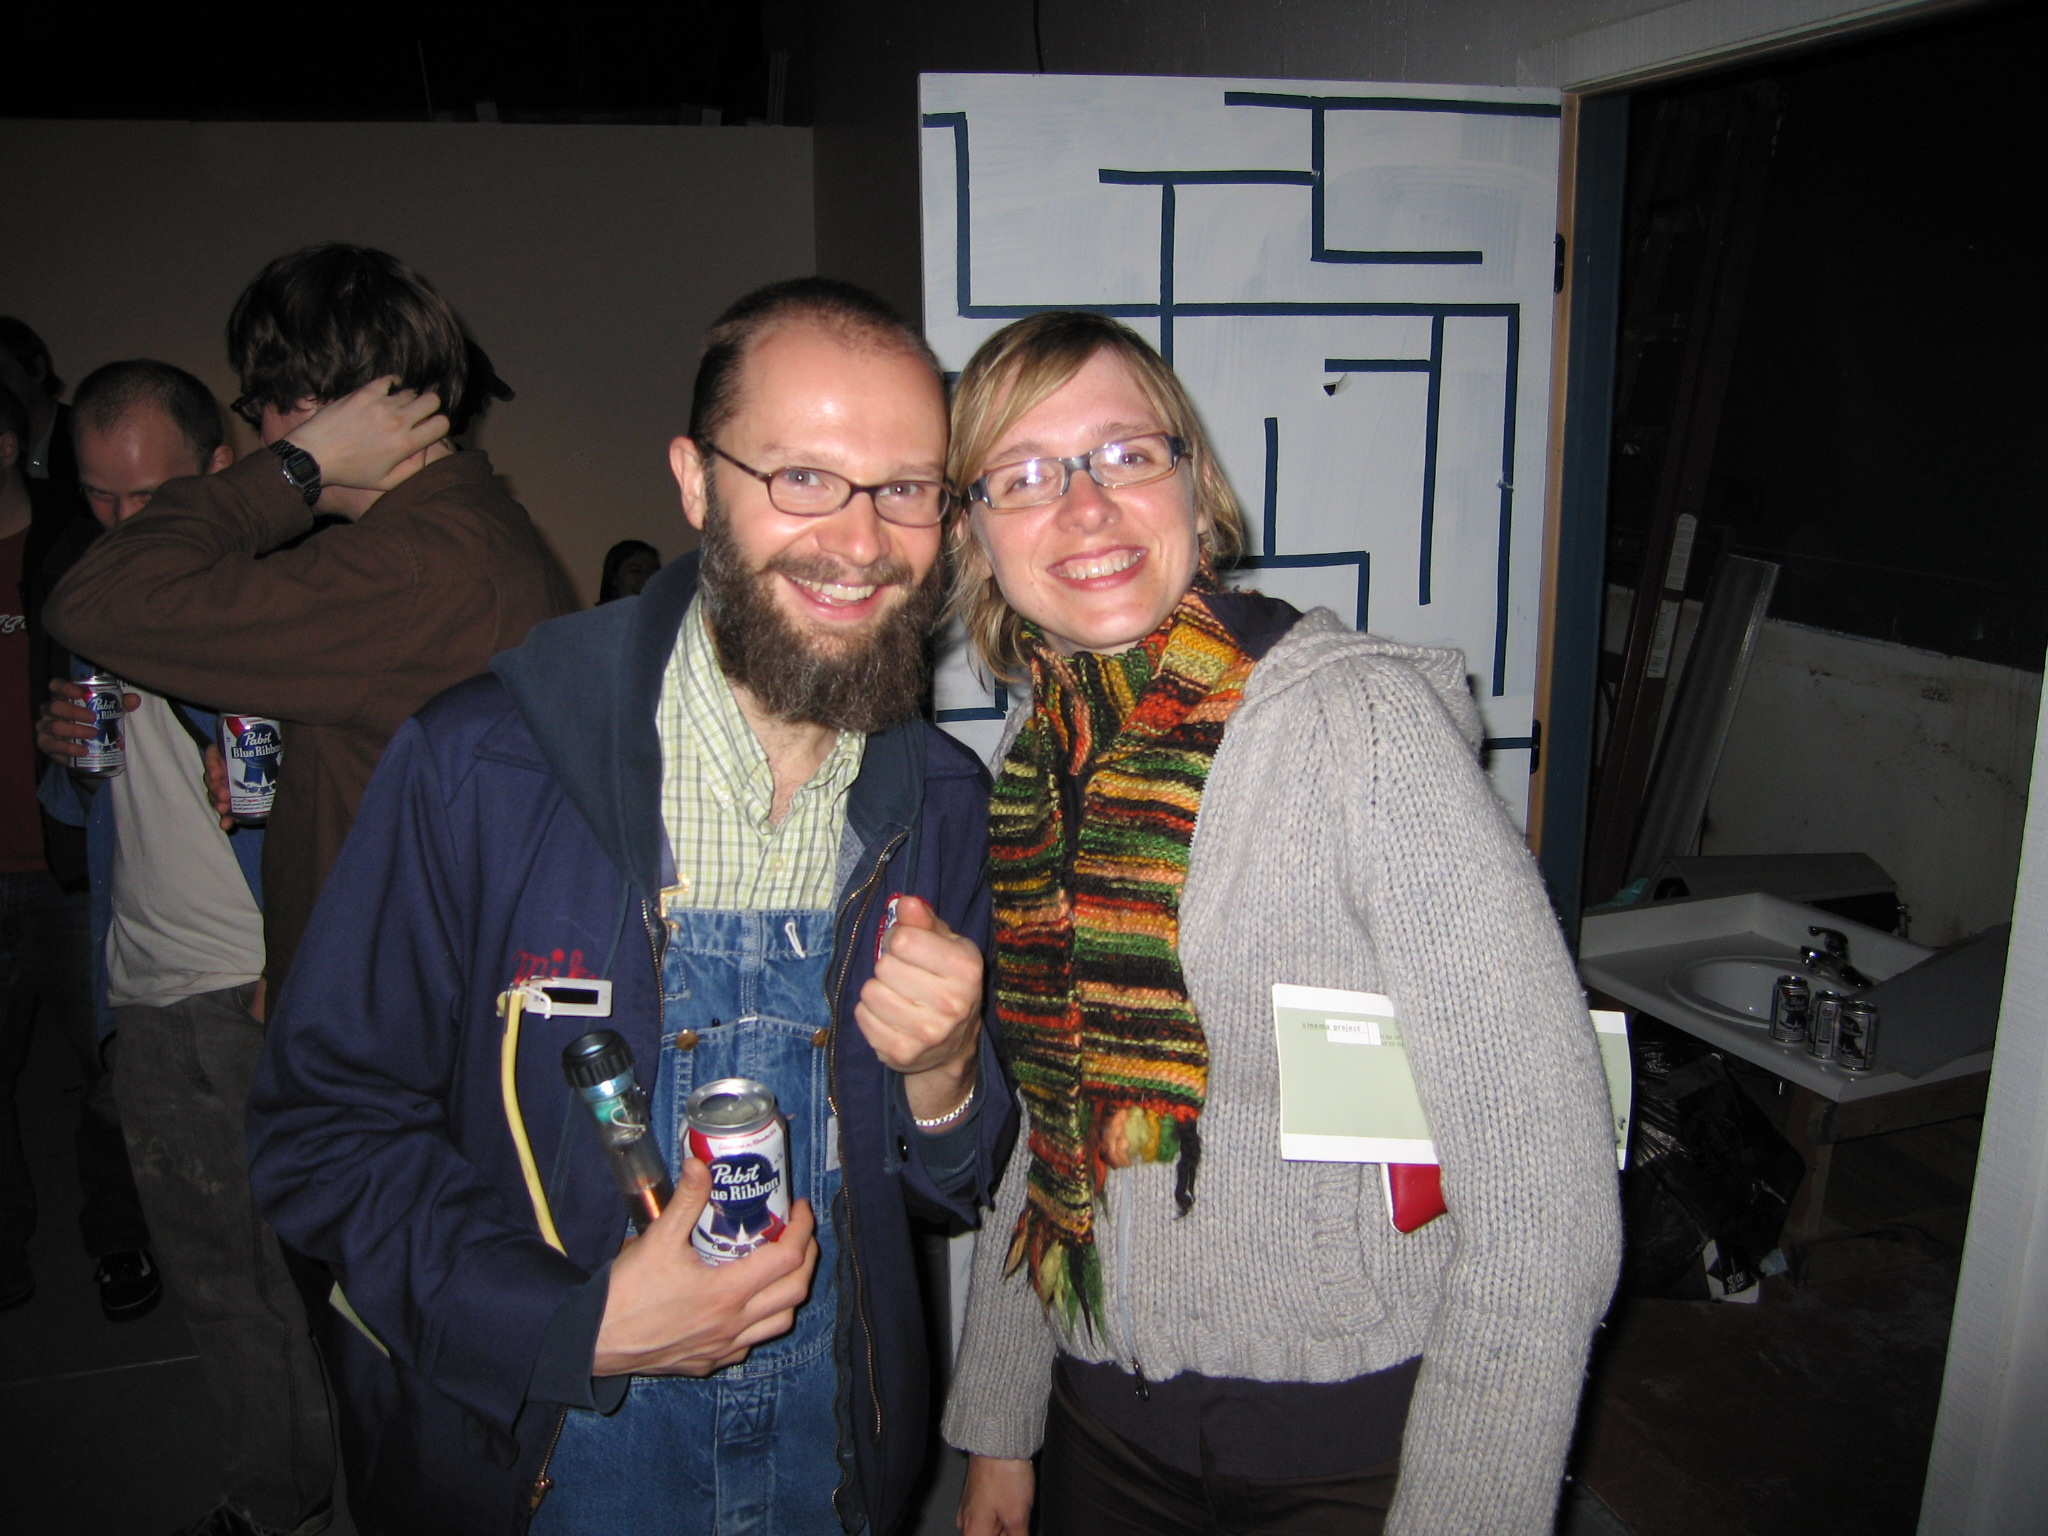 David Gatten and Adele Horne at the 2005 PDX Film Festival